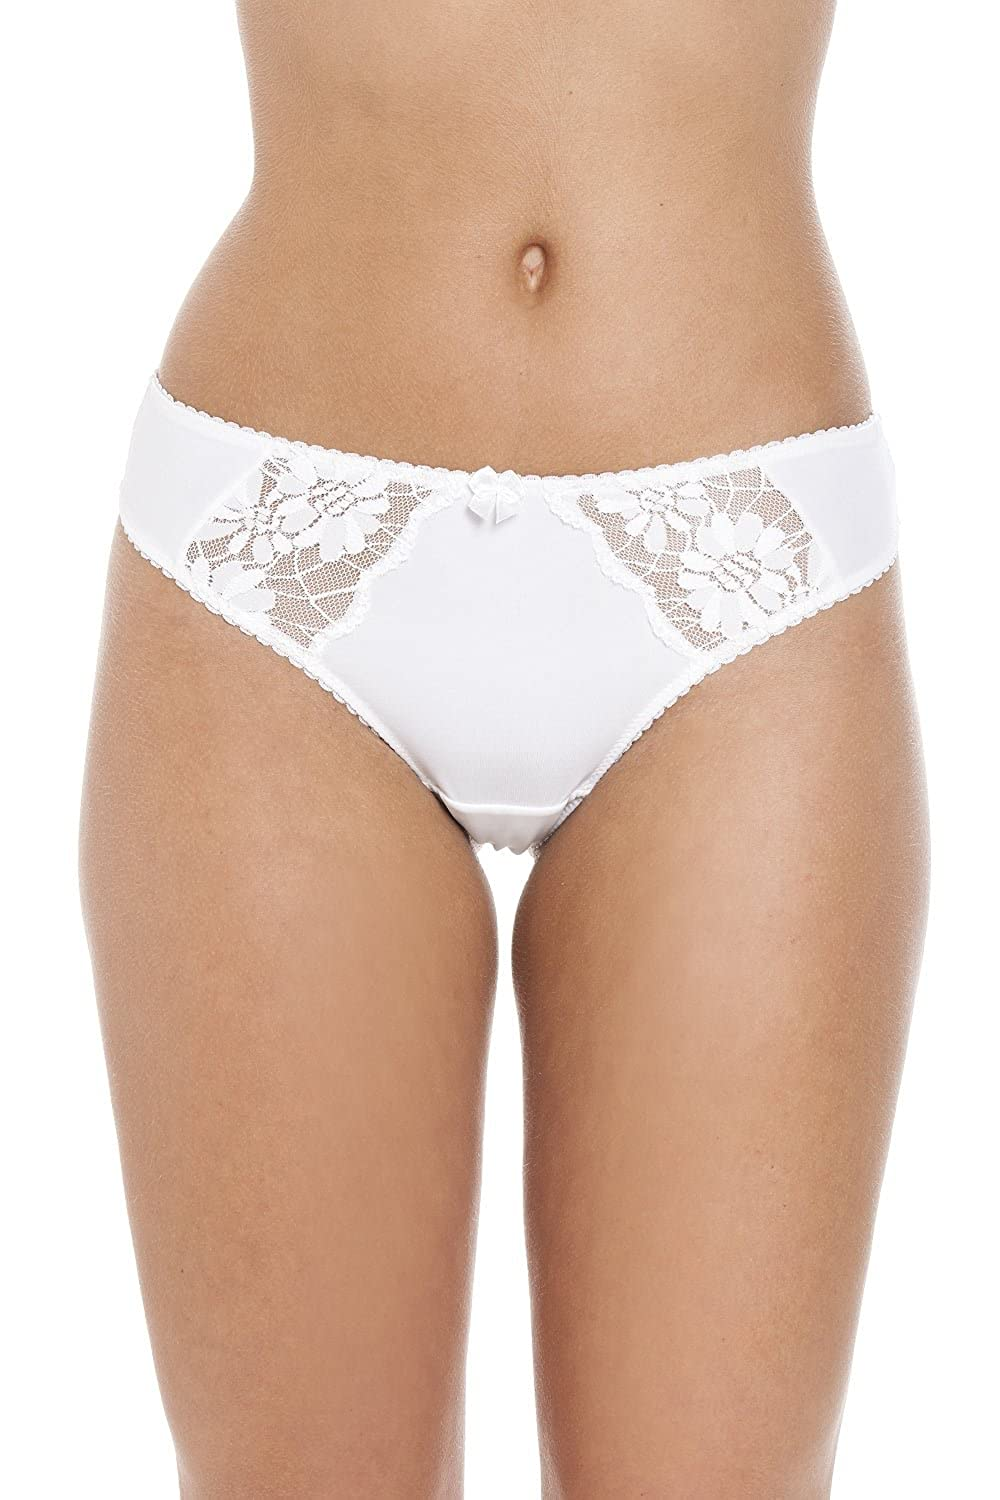 Camille Womens Ladies Lace Underwear Thong Sizes 10-20